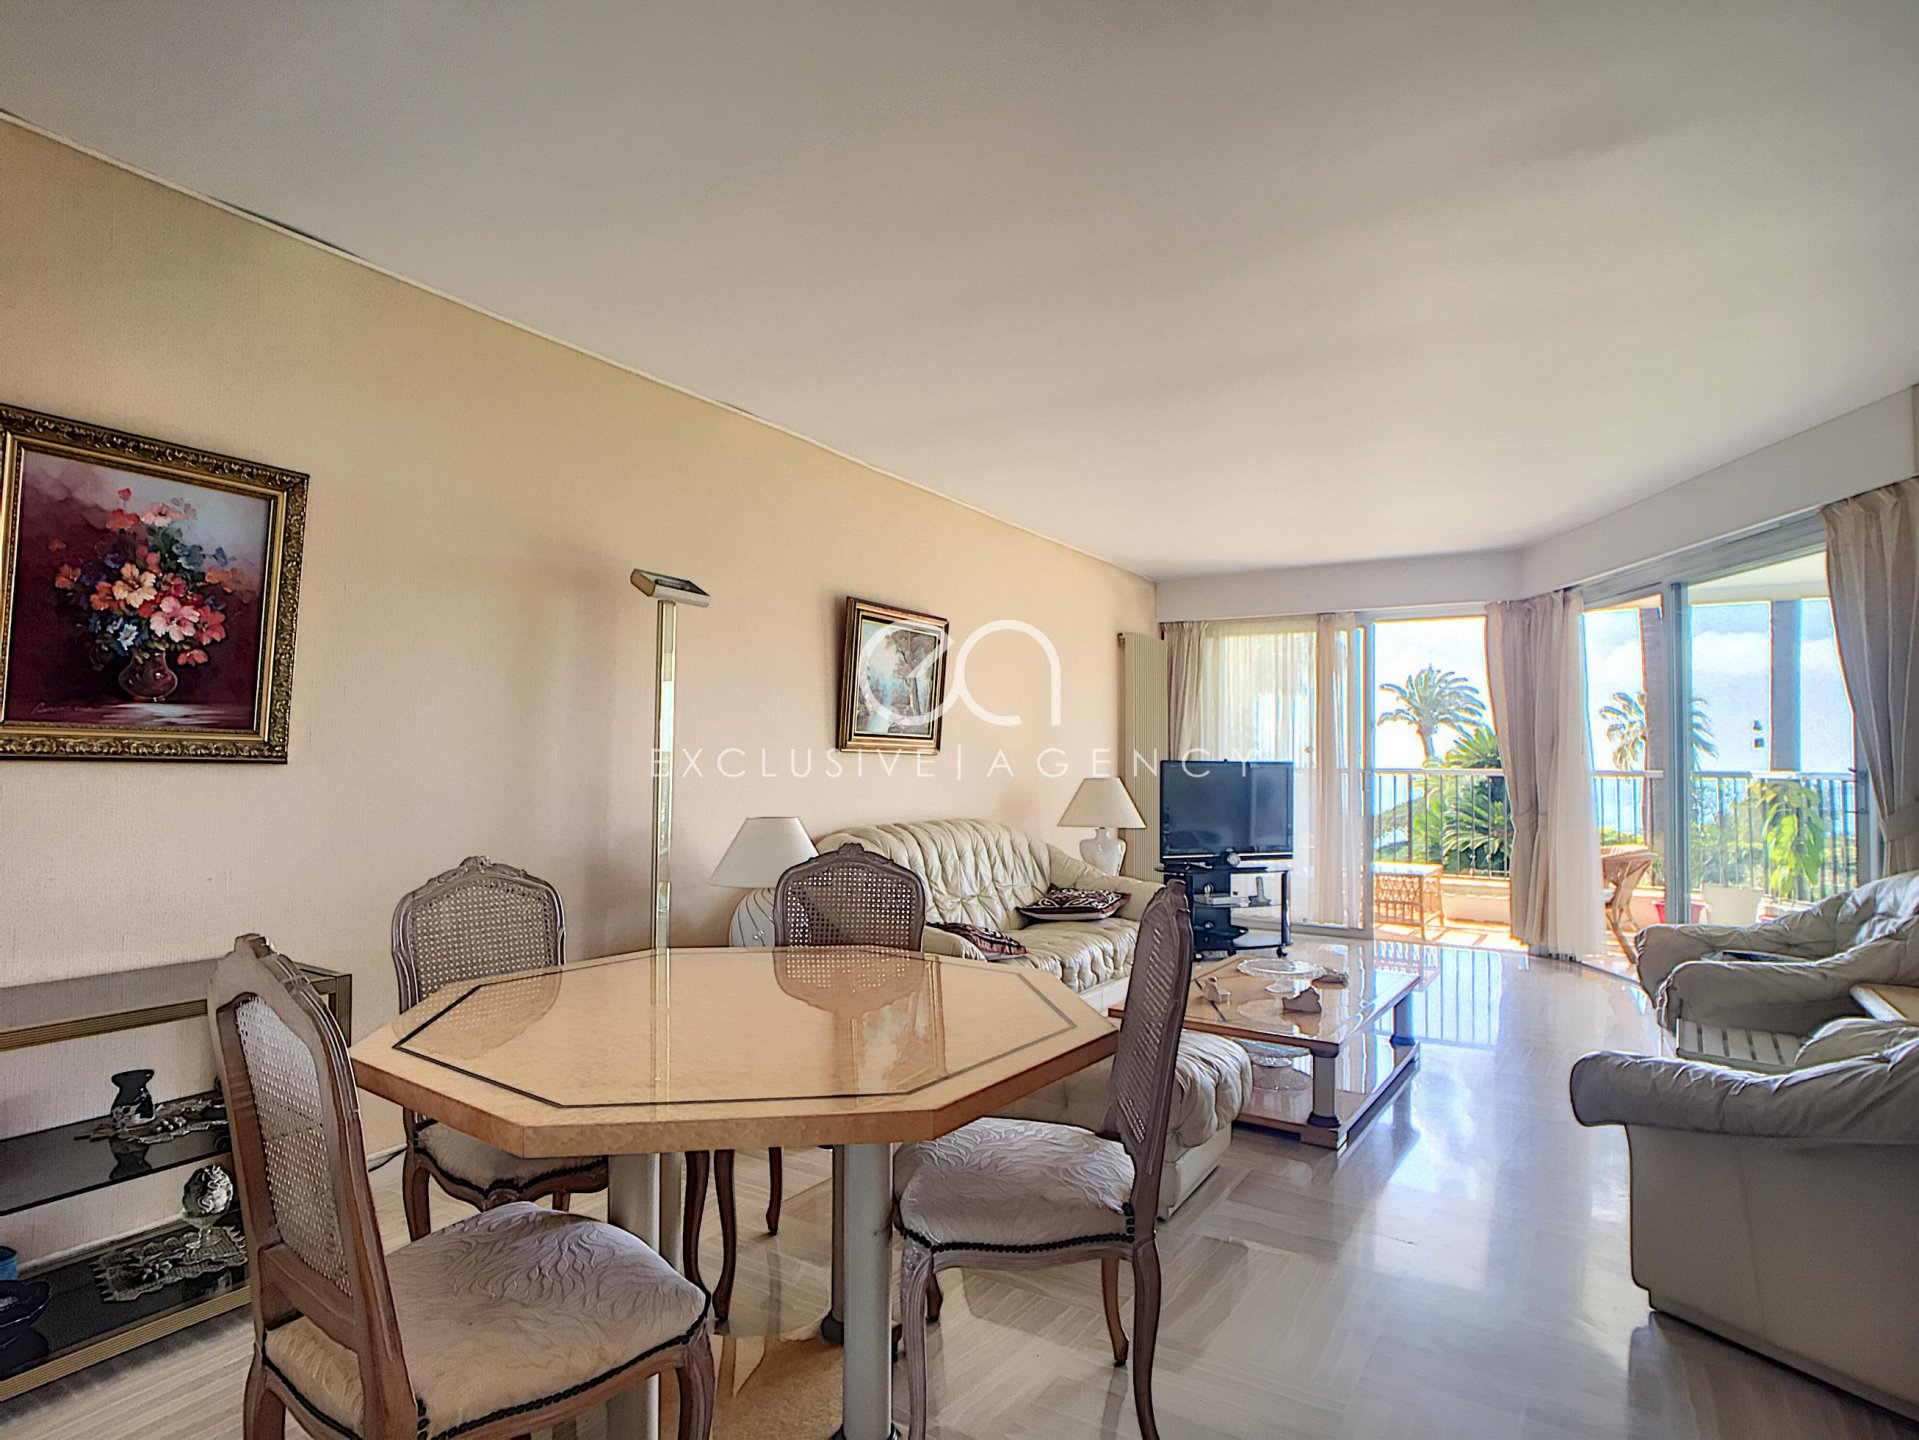 FOR SALE 110sqm 2-bedroom apartment with a sea view terrace